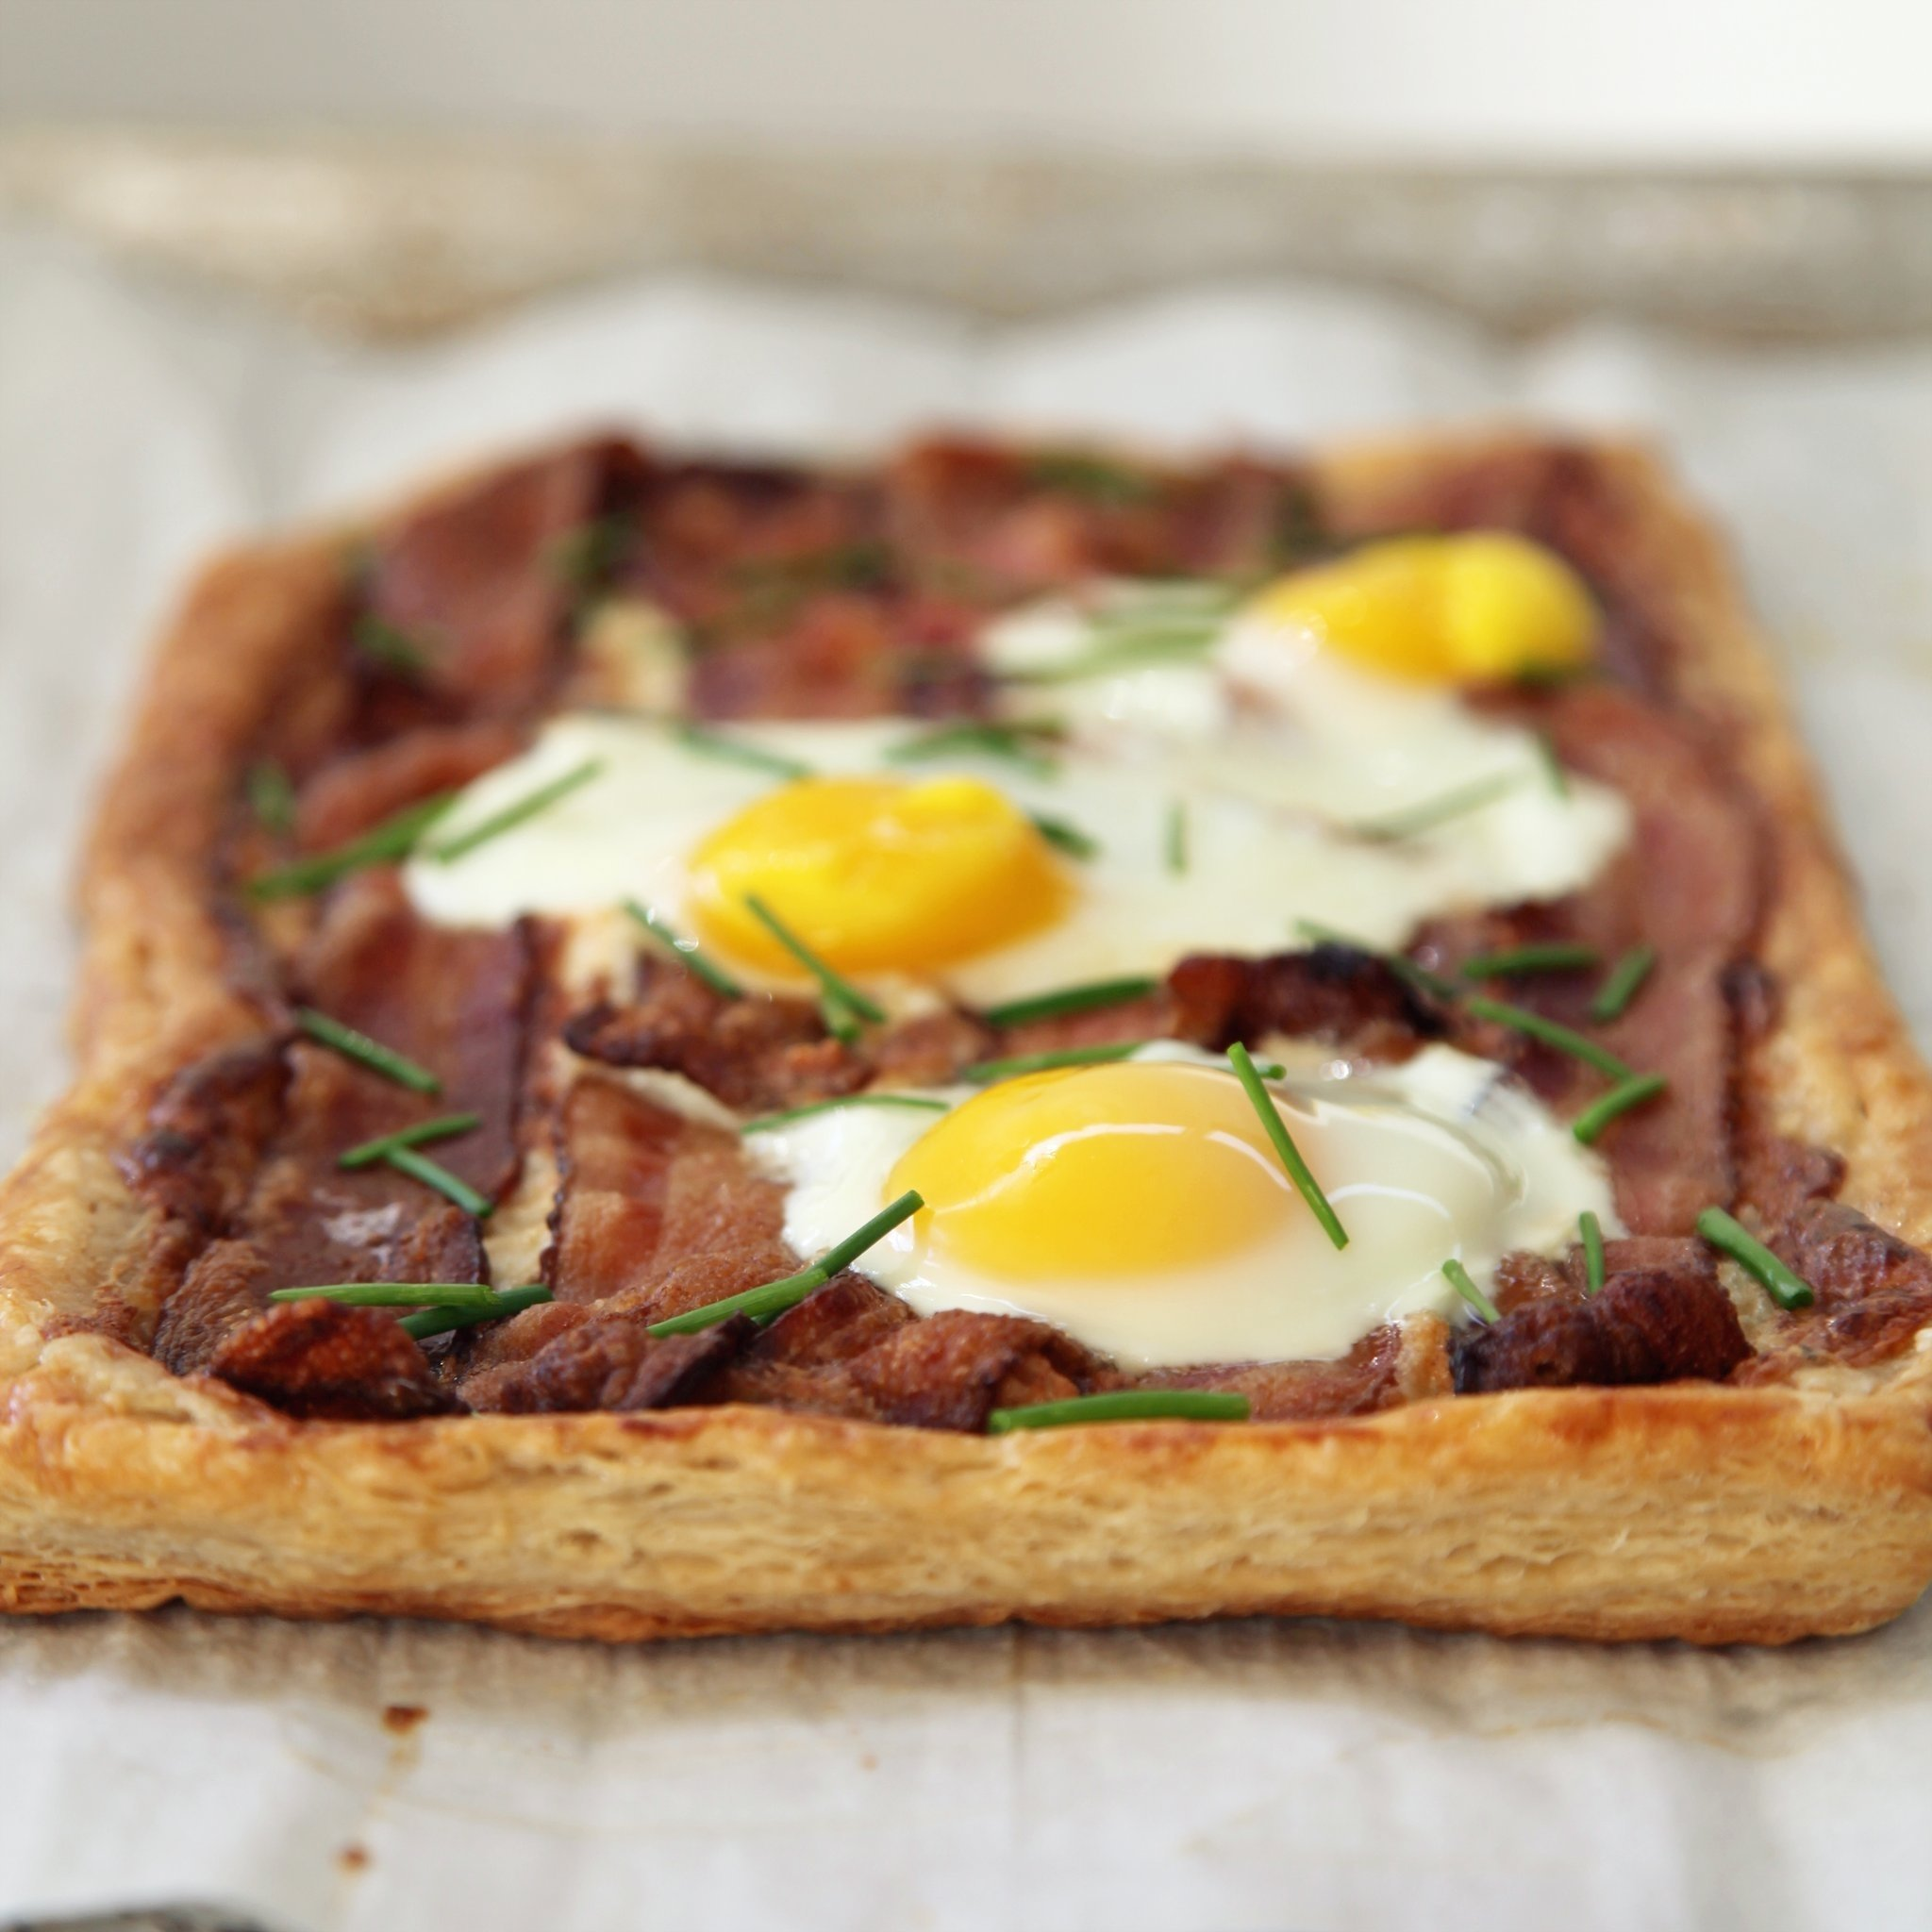 10 Fashionable Breakfast Ideas With Eggs And Bacon recipe for bacon and egg breakfast tart popsugar food 2020